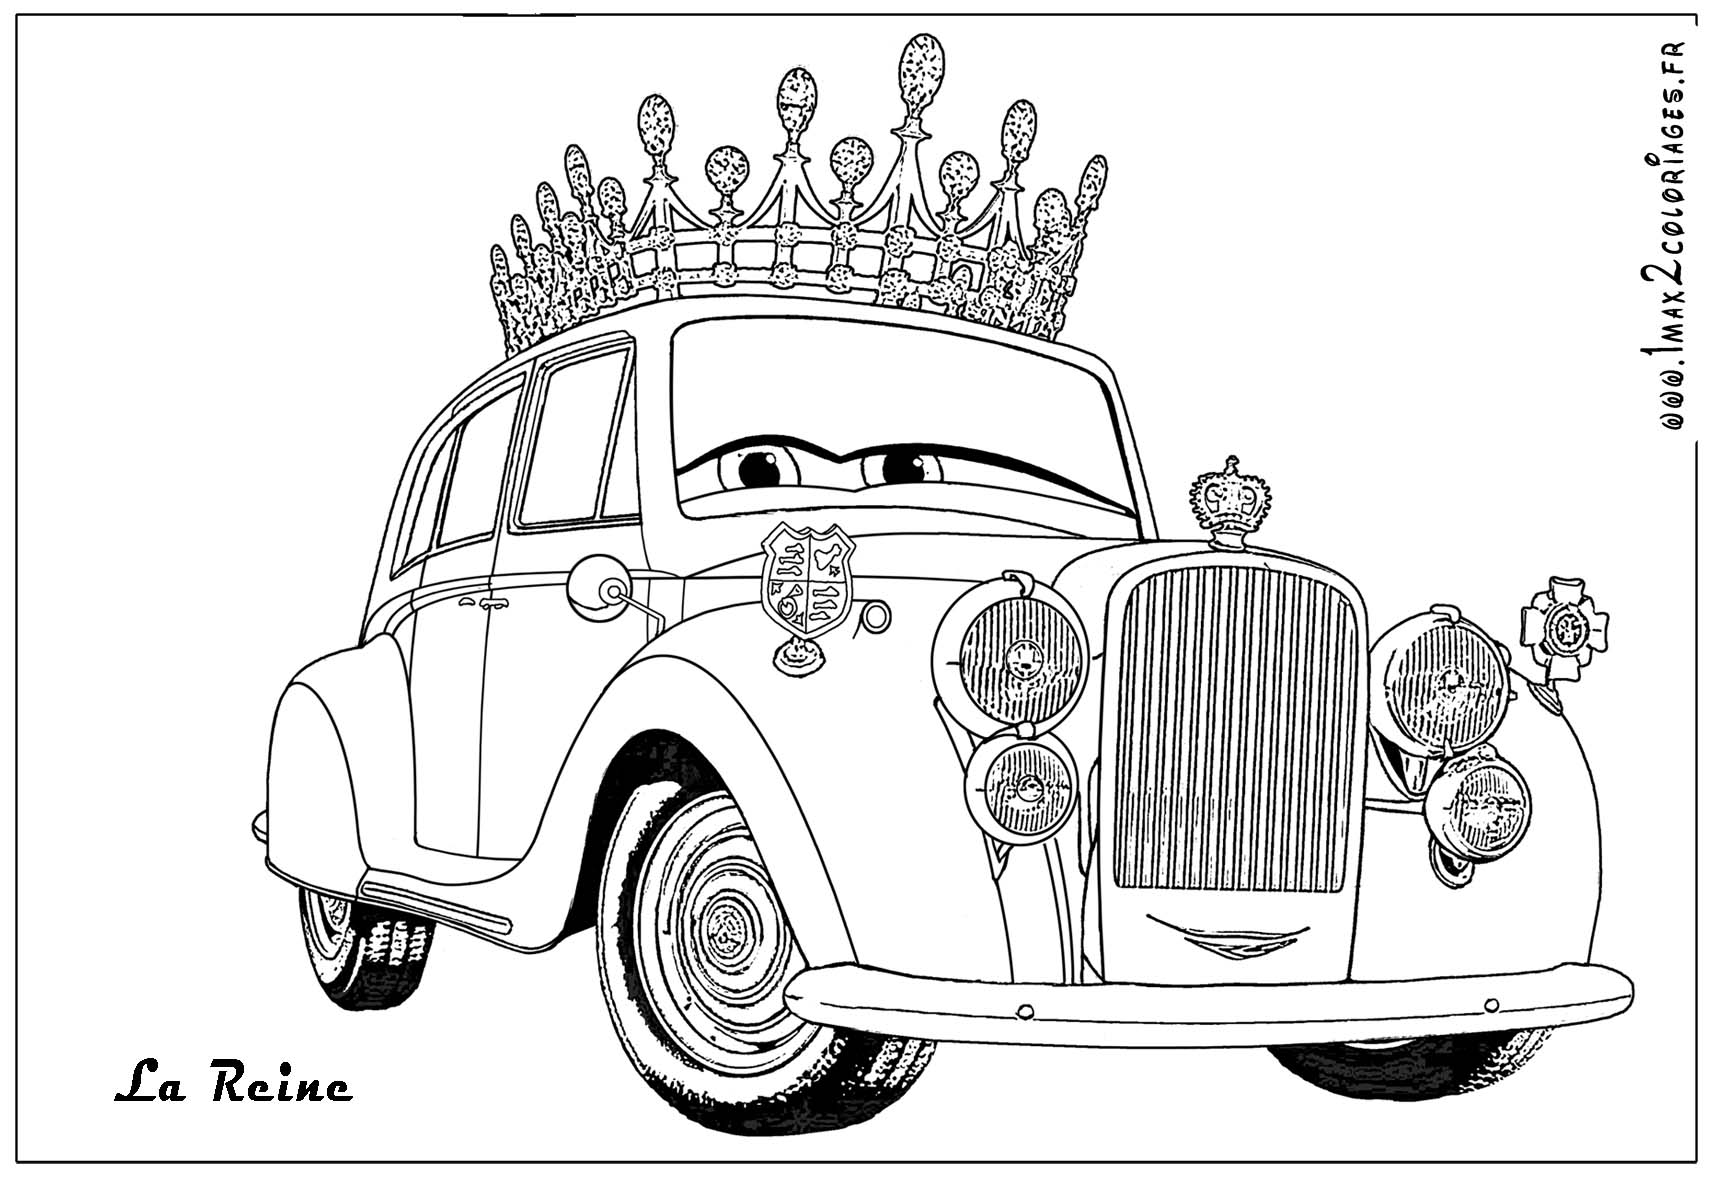 Coloriages cars 2 coloriages les bagnoles 2 - Car coloriage ...